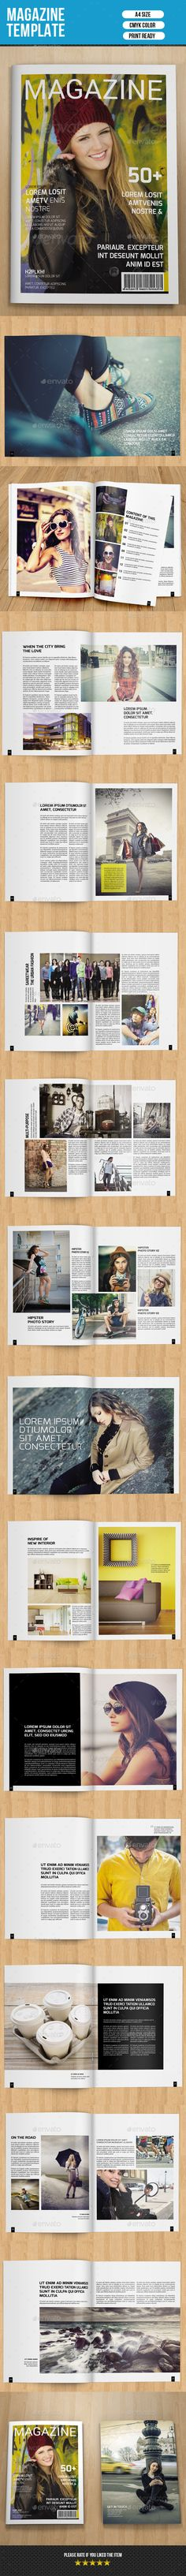 Minimal Fashion Magazine-V06 (CS4, 210x297, blue, book, business, business magazine, charts, clean, corporate, corporate magazine, cyan, design, elegant, fashion, financial, graphic river, graphicriver, gray, icons, magazine, minimal, modern, money, proposal, template, templates, typography)